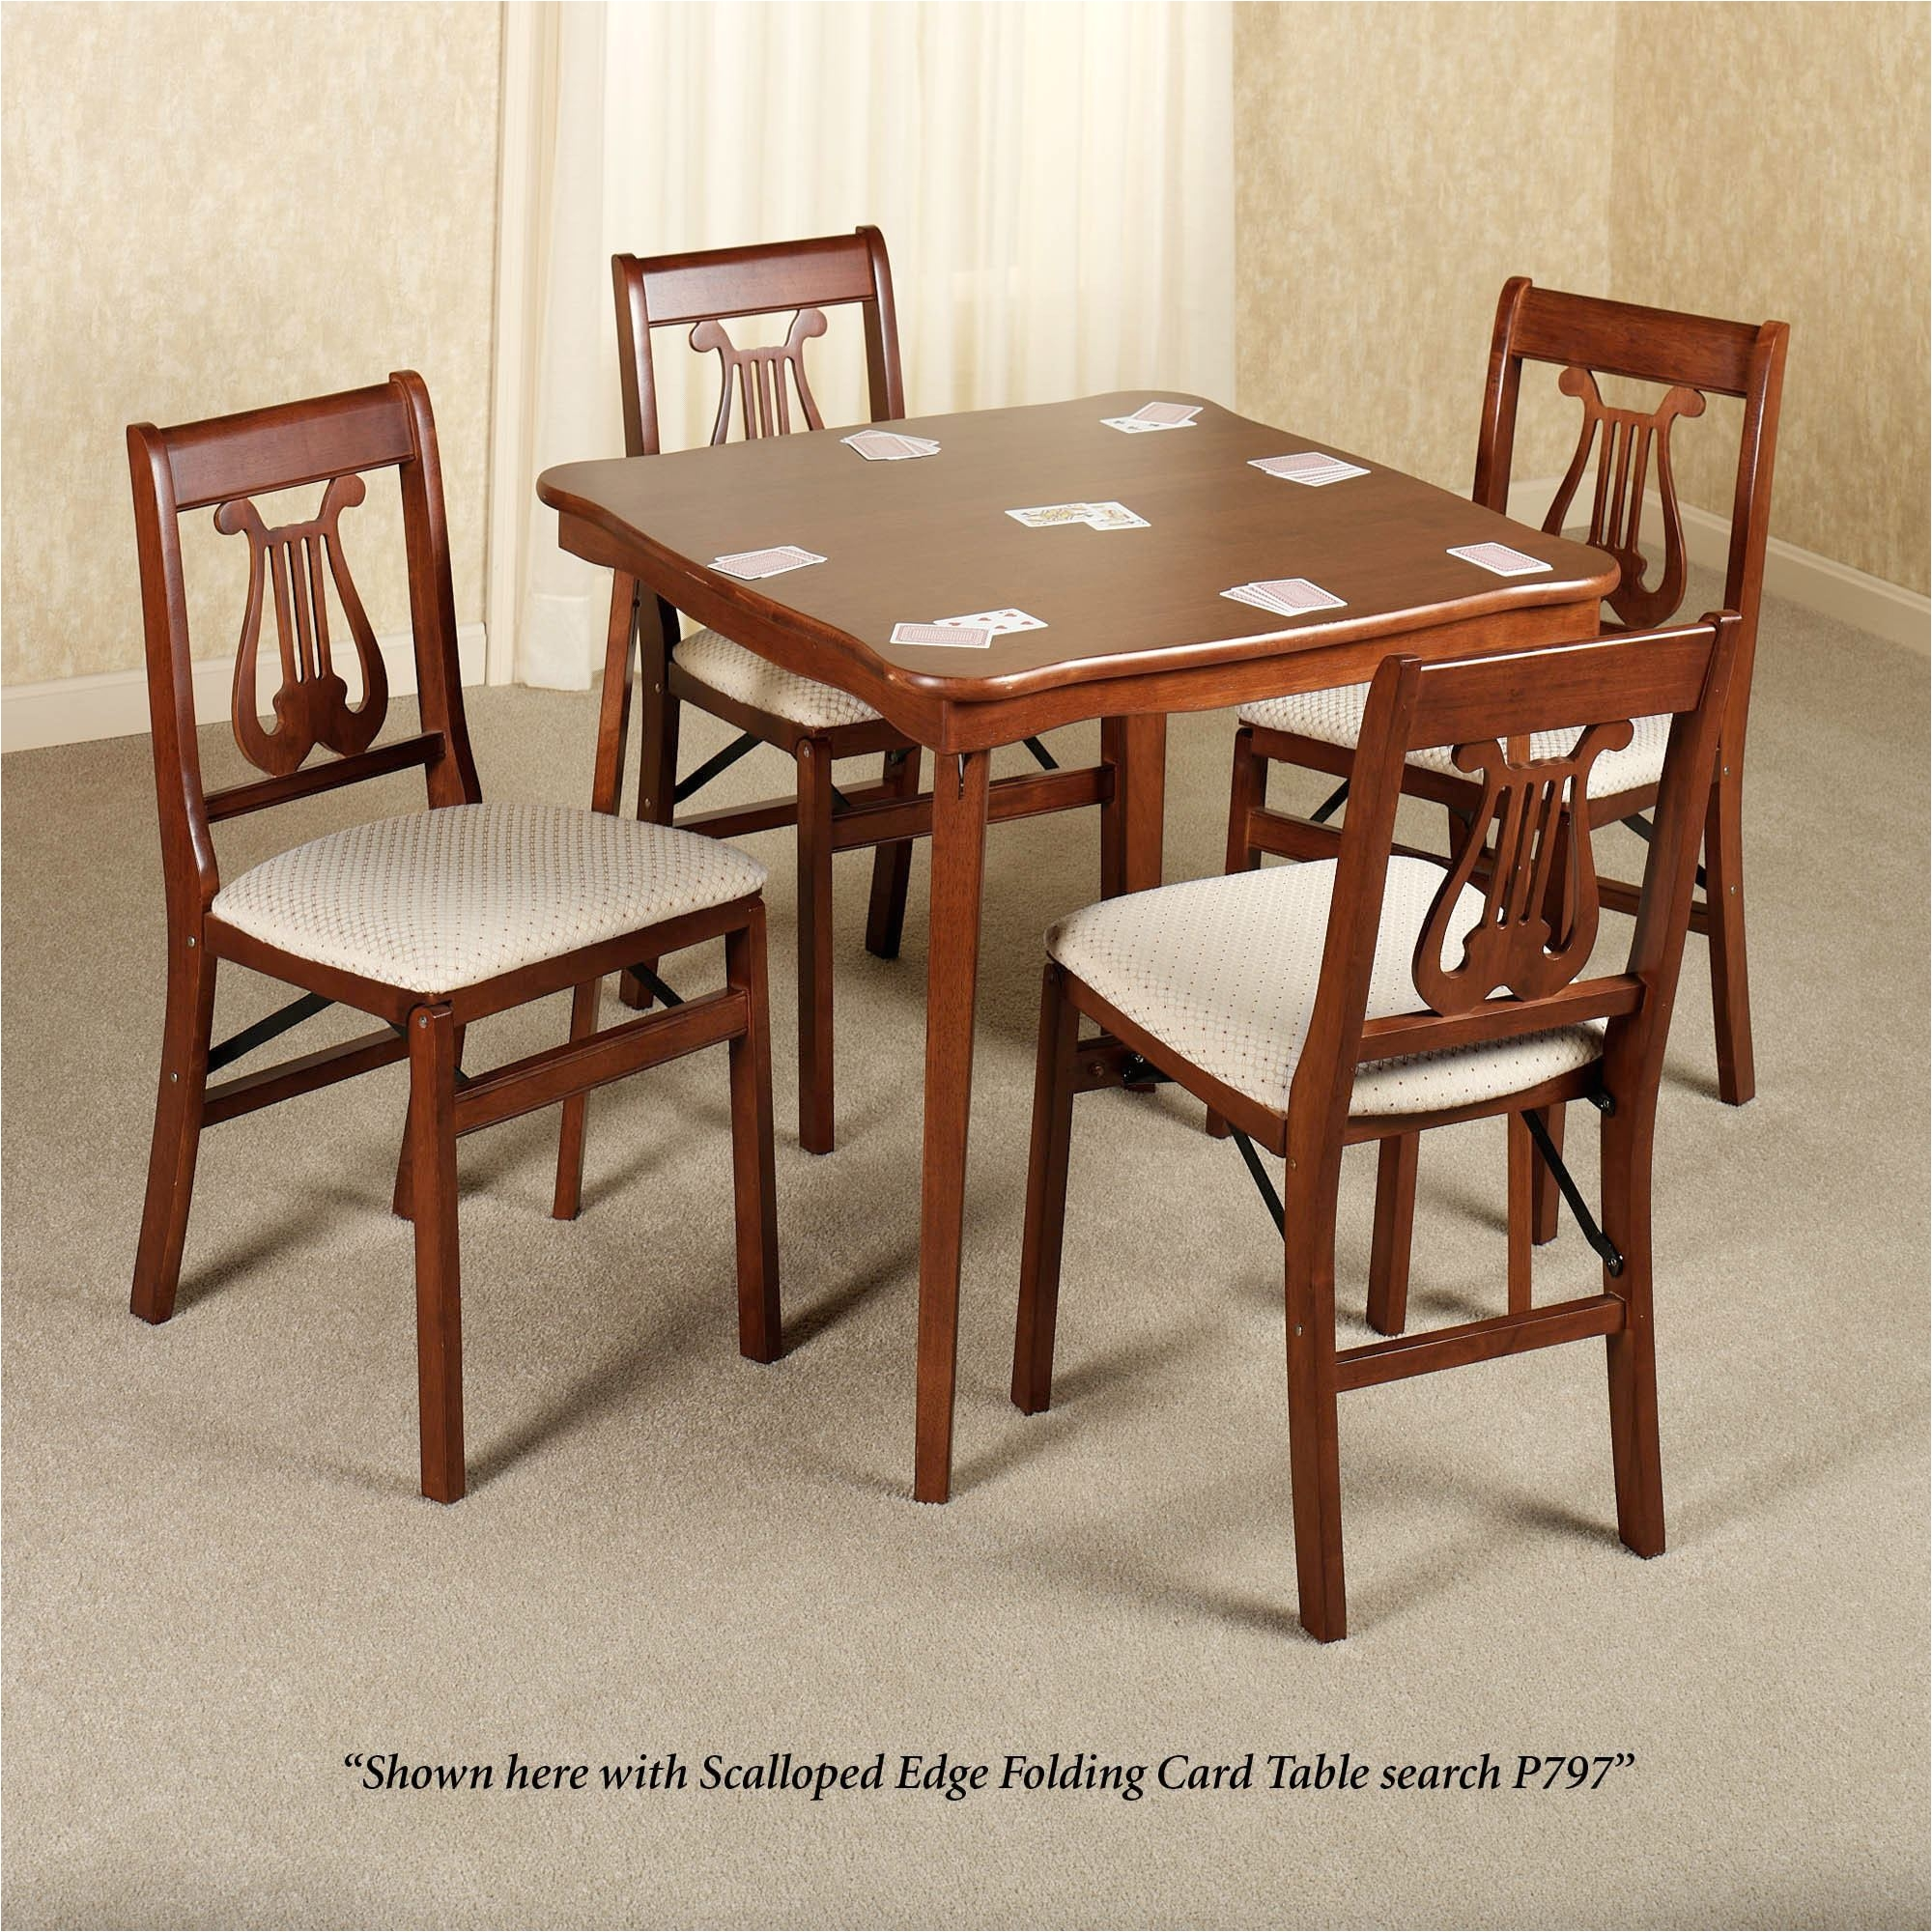 harden furniture price list company magnificient home office idea with cherry wood table modern colonial prices